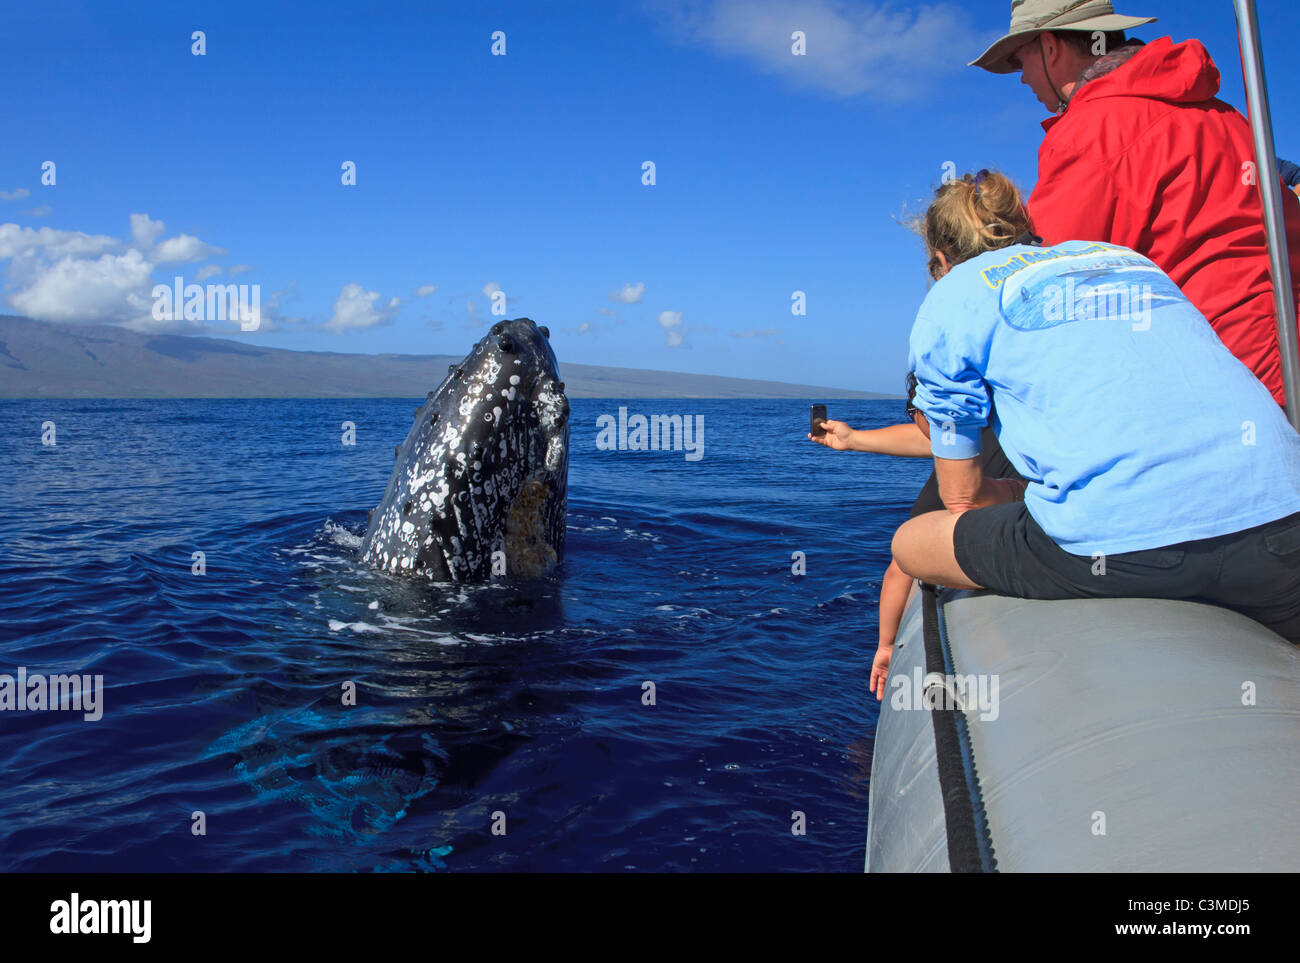 Humpback whale comes up to look the people on a tour boat, Maui, Hawaii. - Stock Image